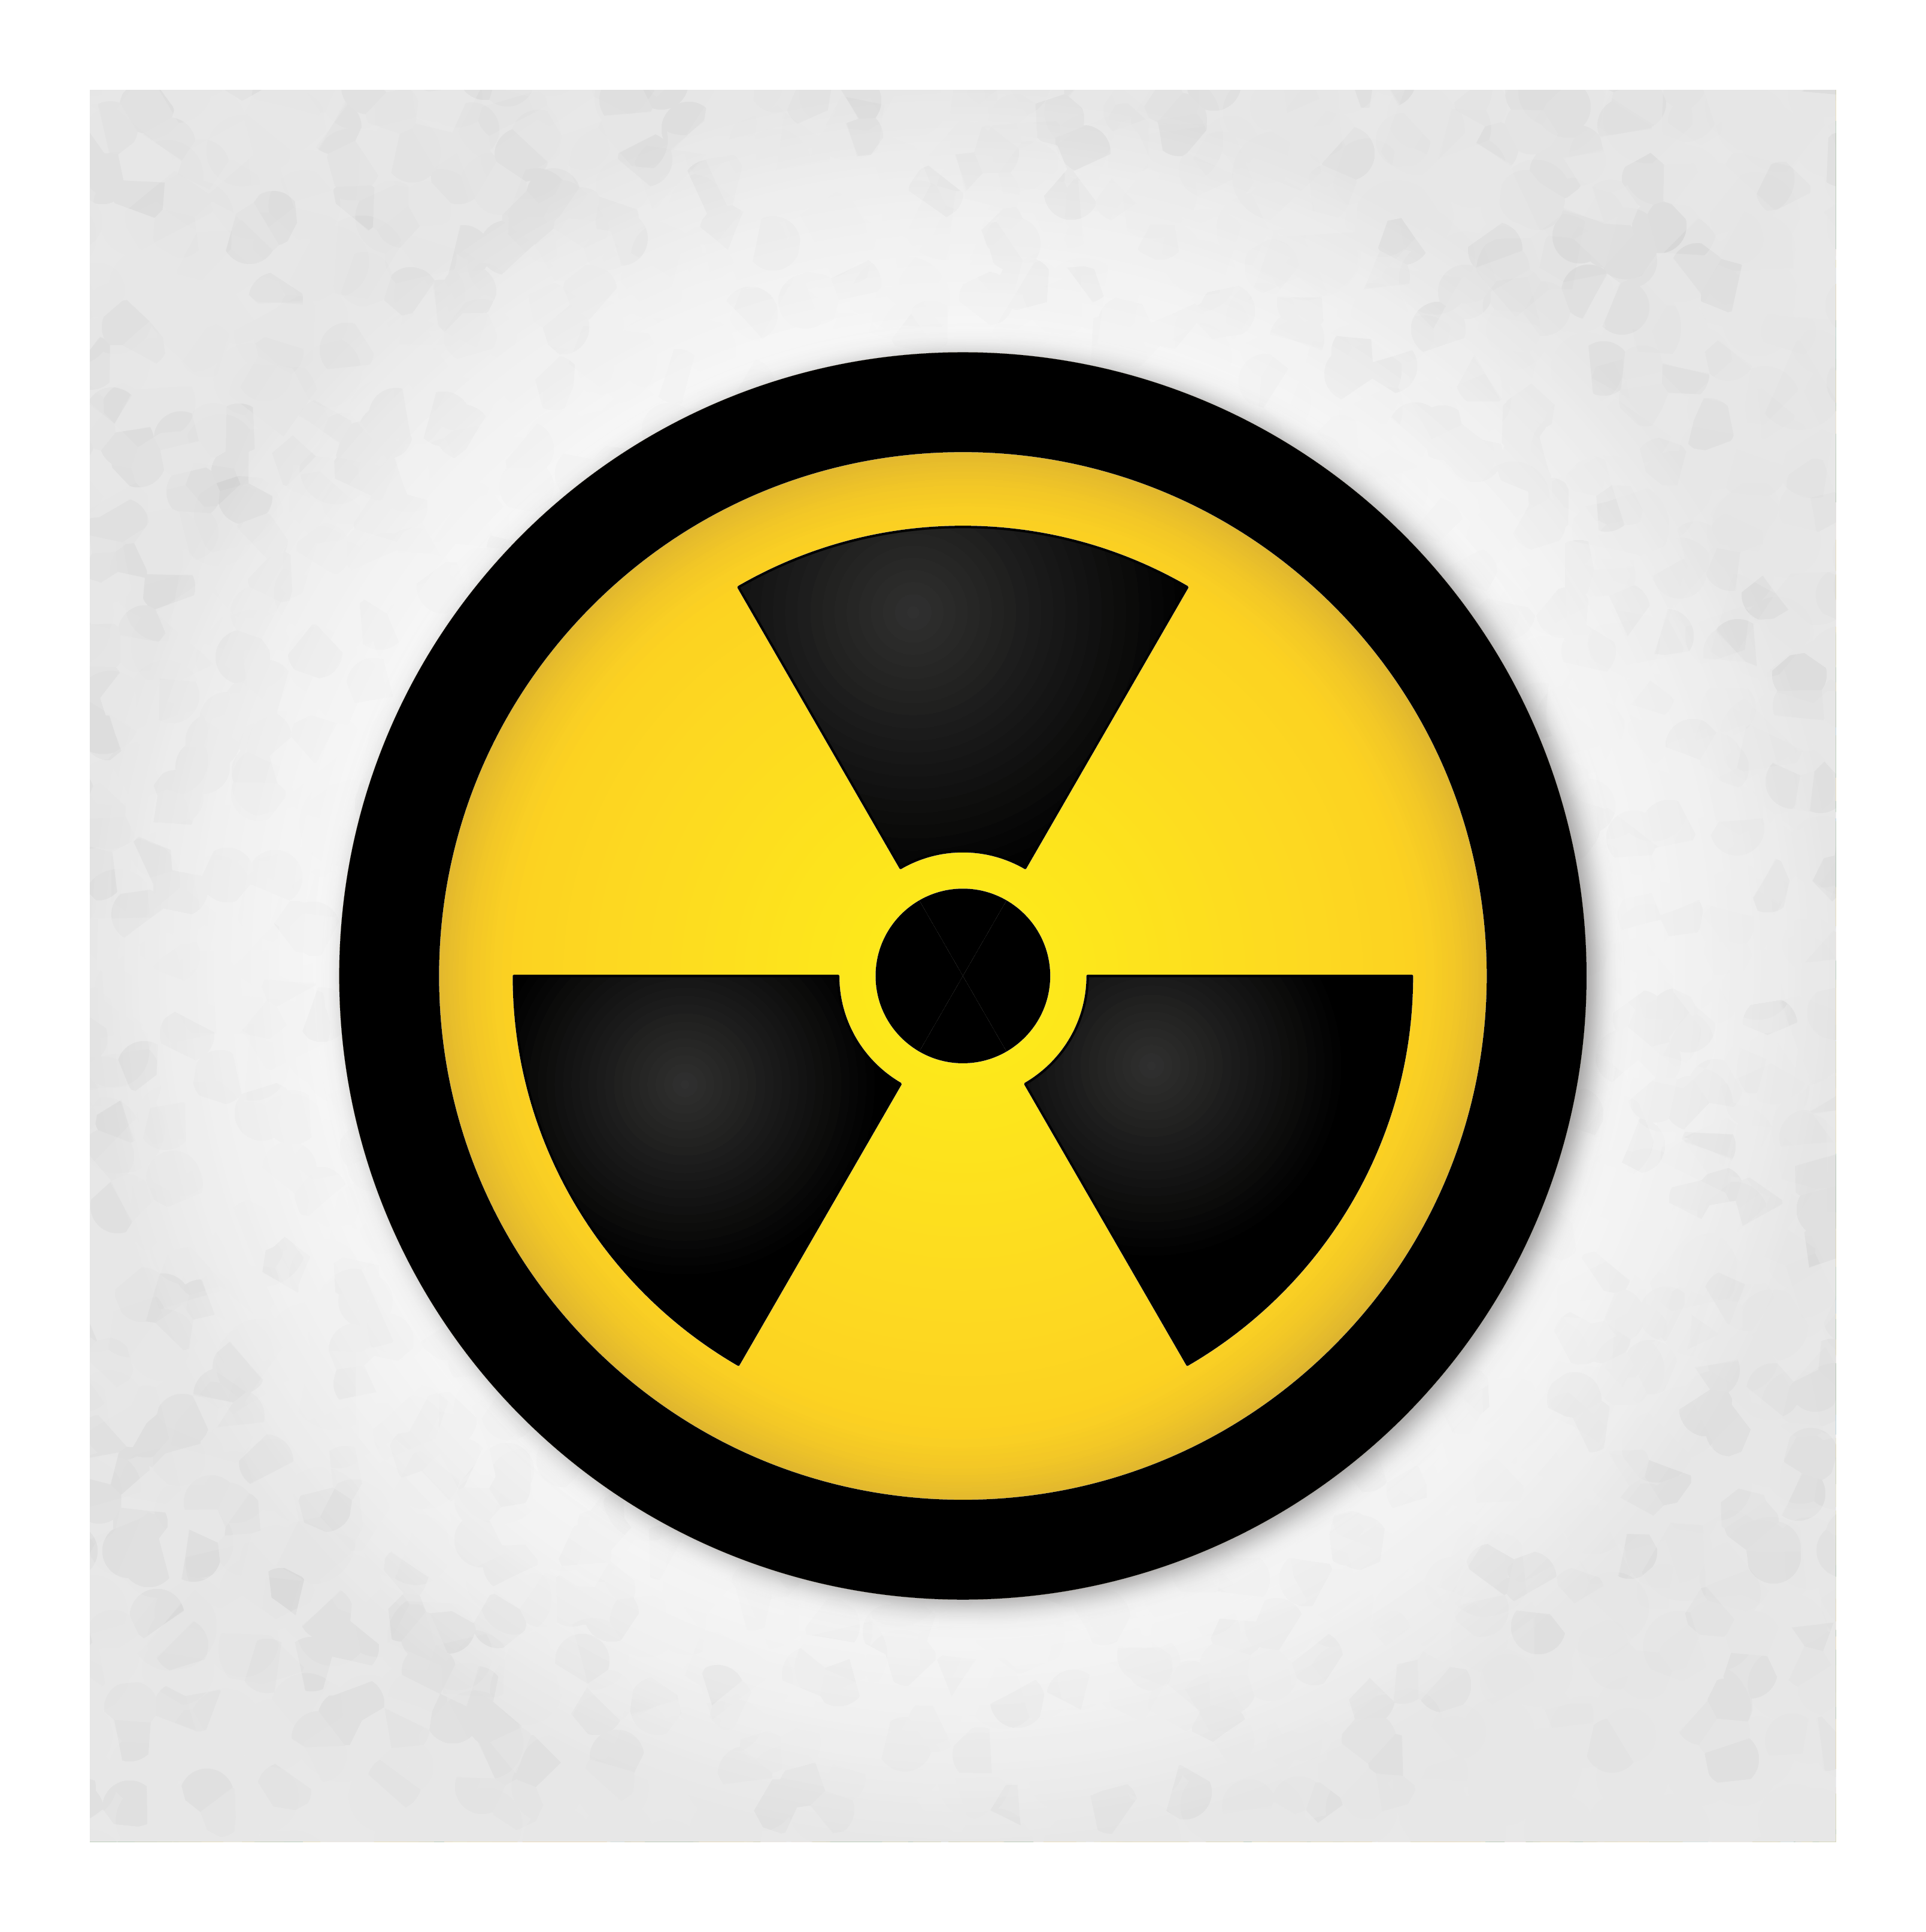 Nuclear Symbol - Bing images